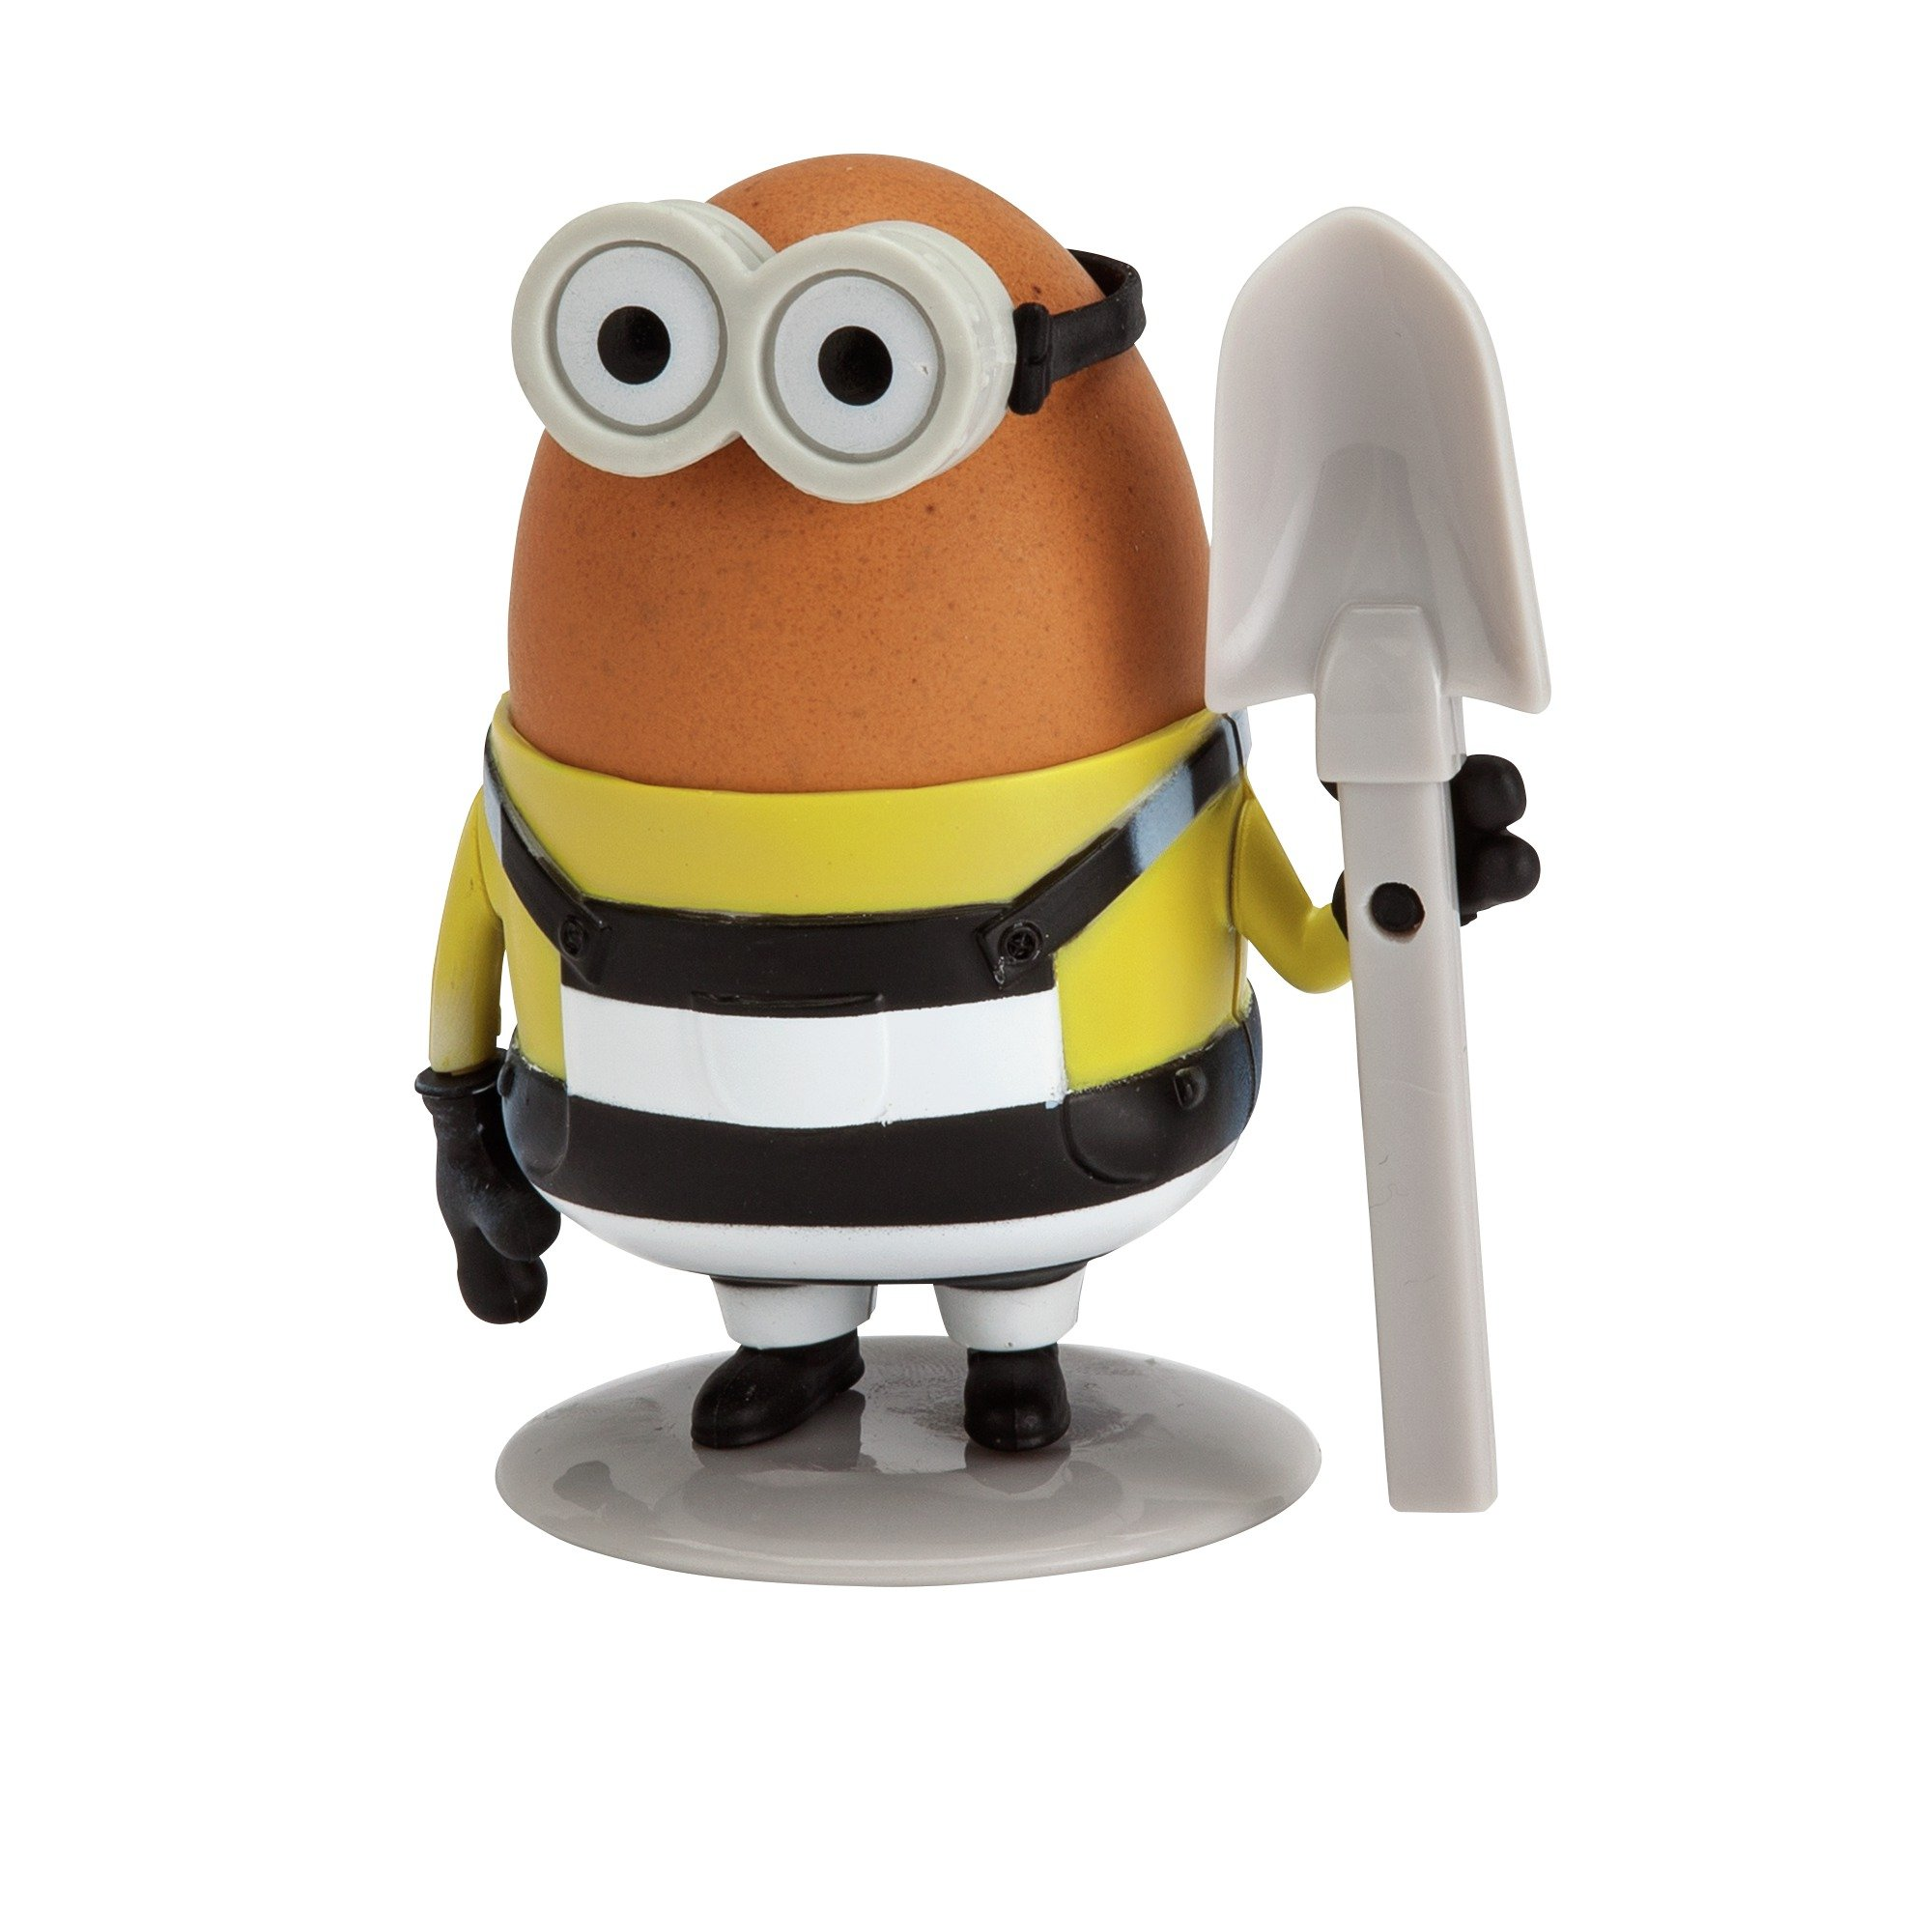 Despicable Me 3 Egg Cup and Shovel Spoon Set.